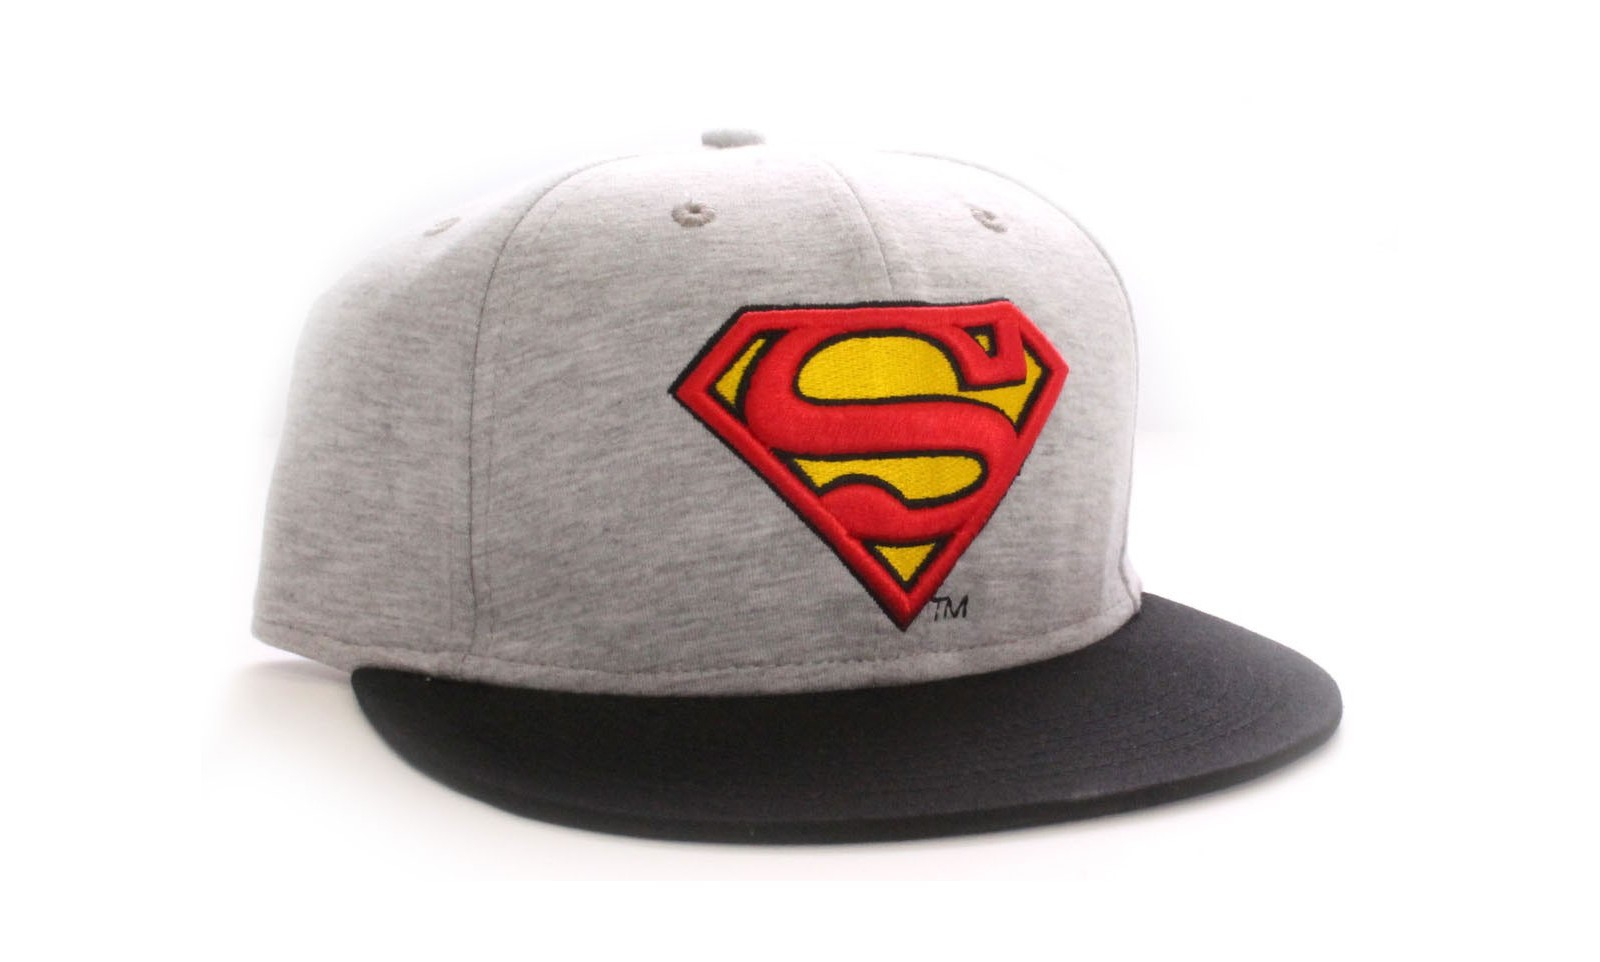 dc comics casquette baseball grise logo superman vintage. Black Bedroom Furniture Sets. Home Design Ideas